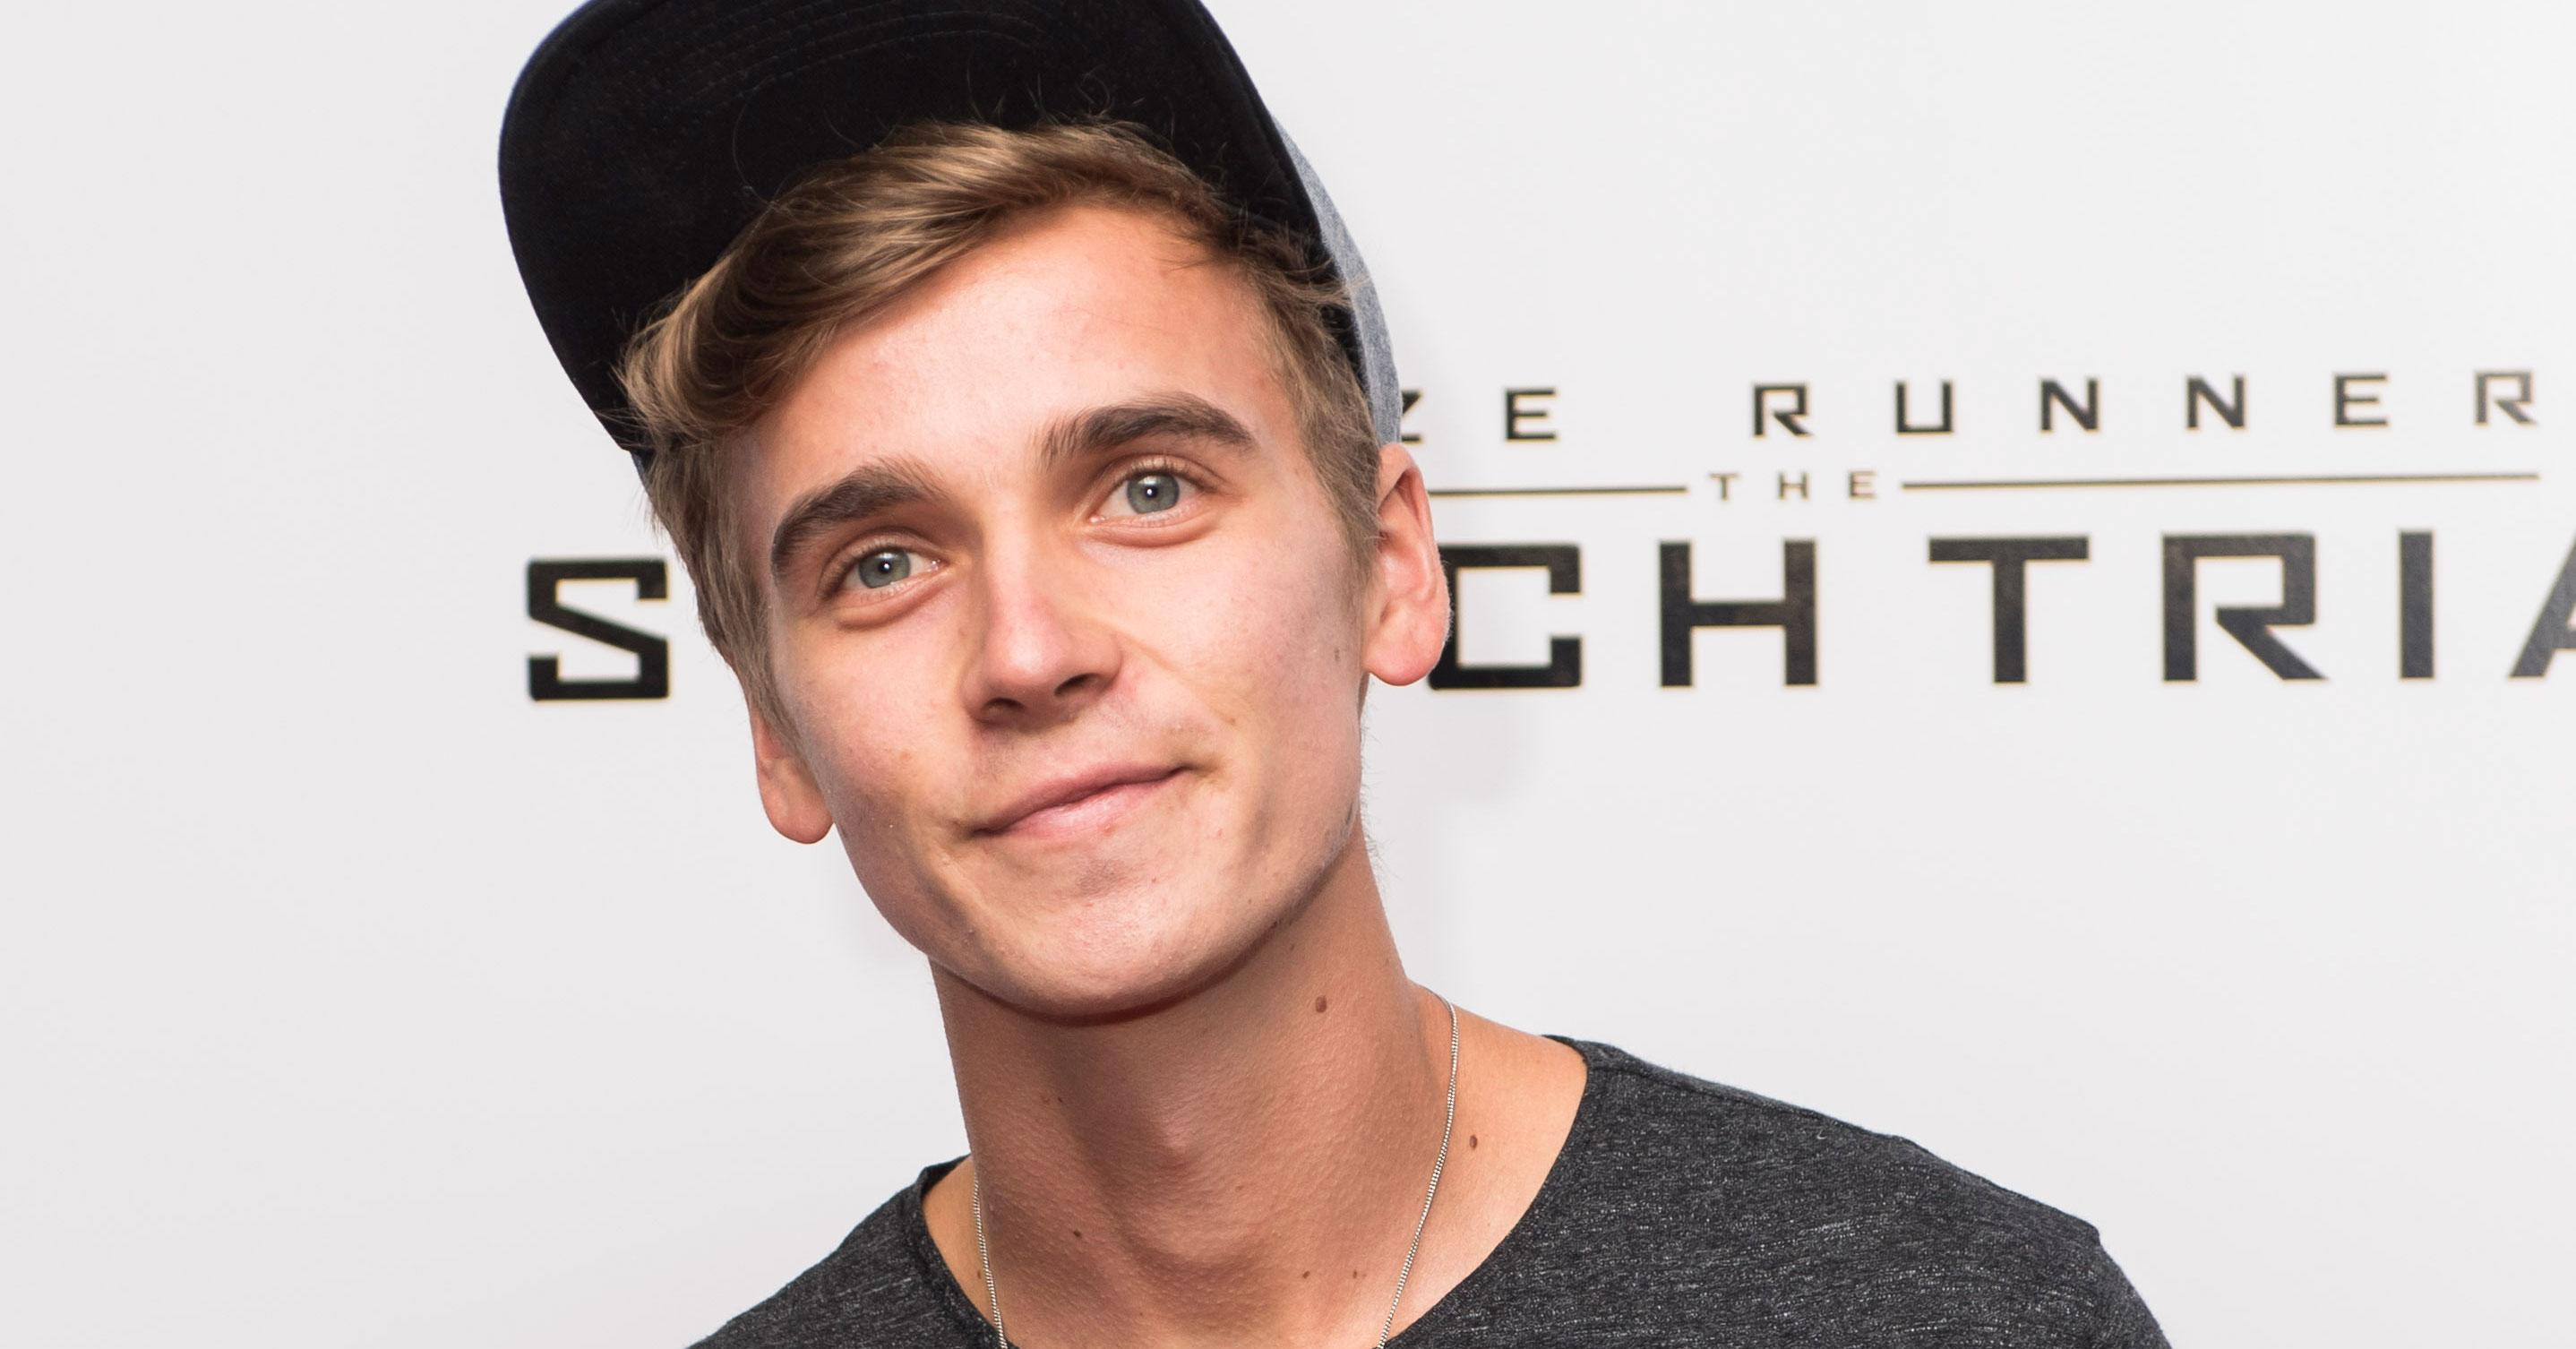 Joe Sugg will be the first viral star to compete on Strictly.